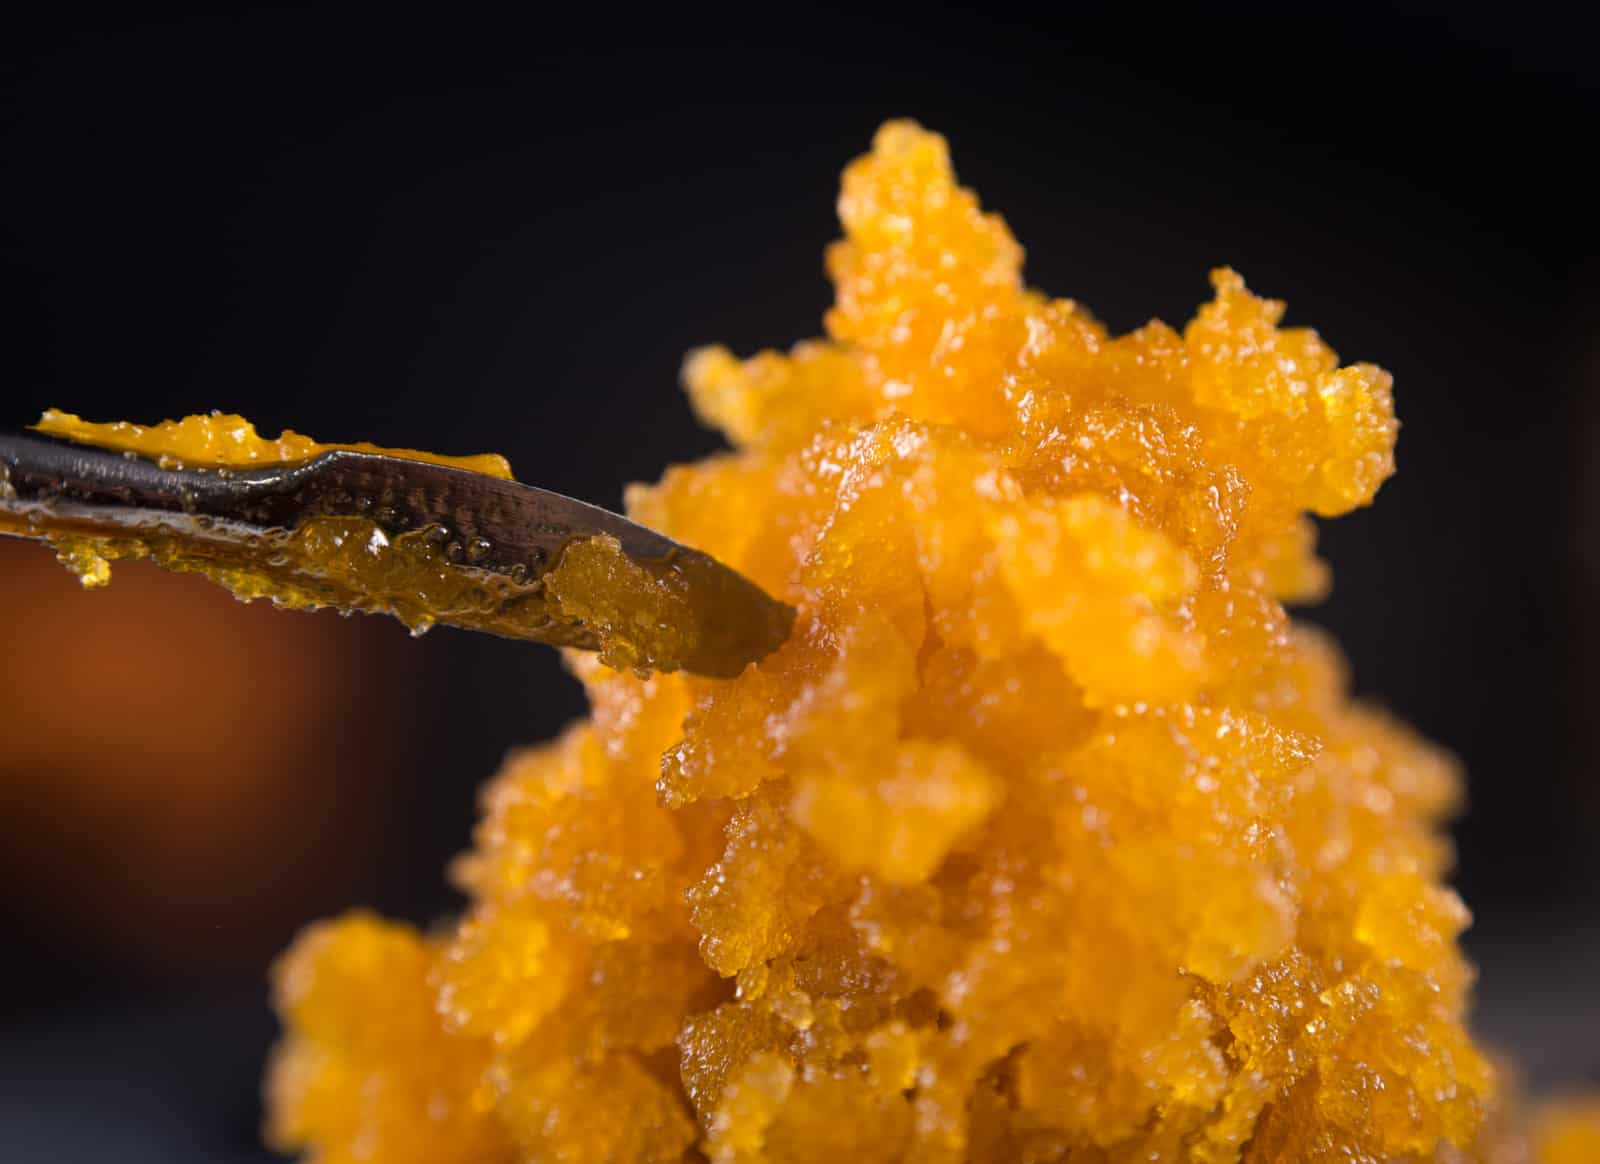 The 10 Best Marijuana Strains For Concentrates.